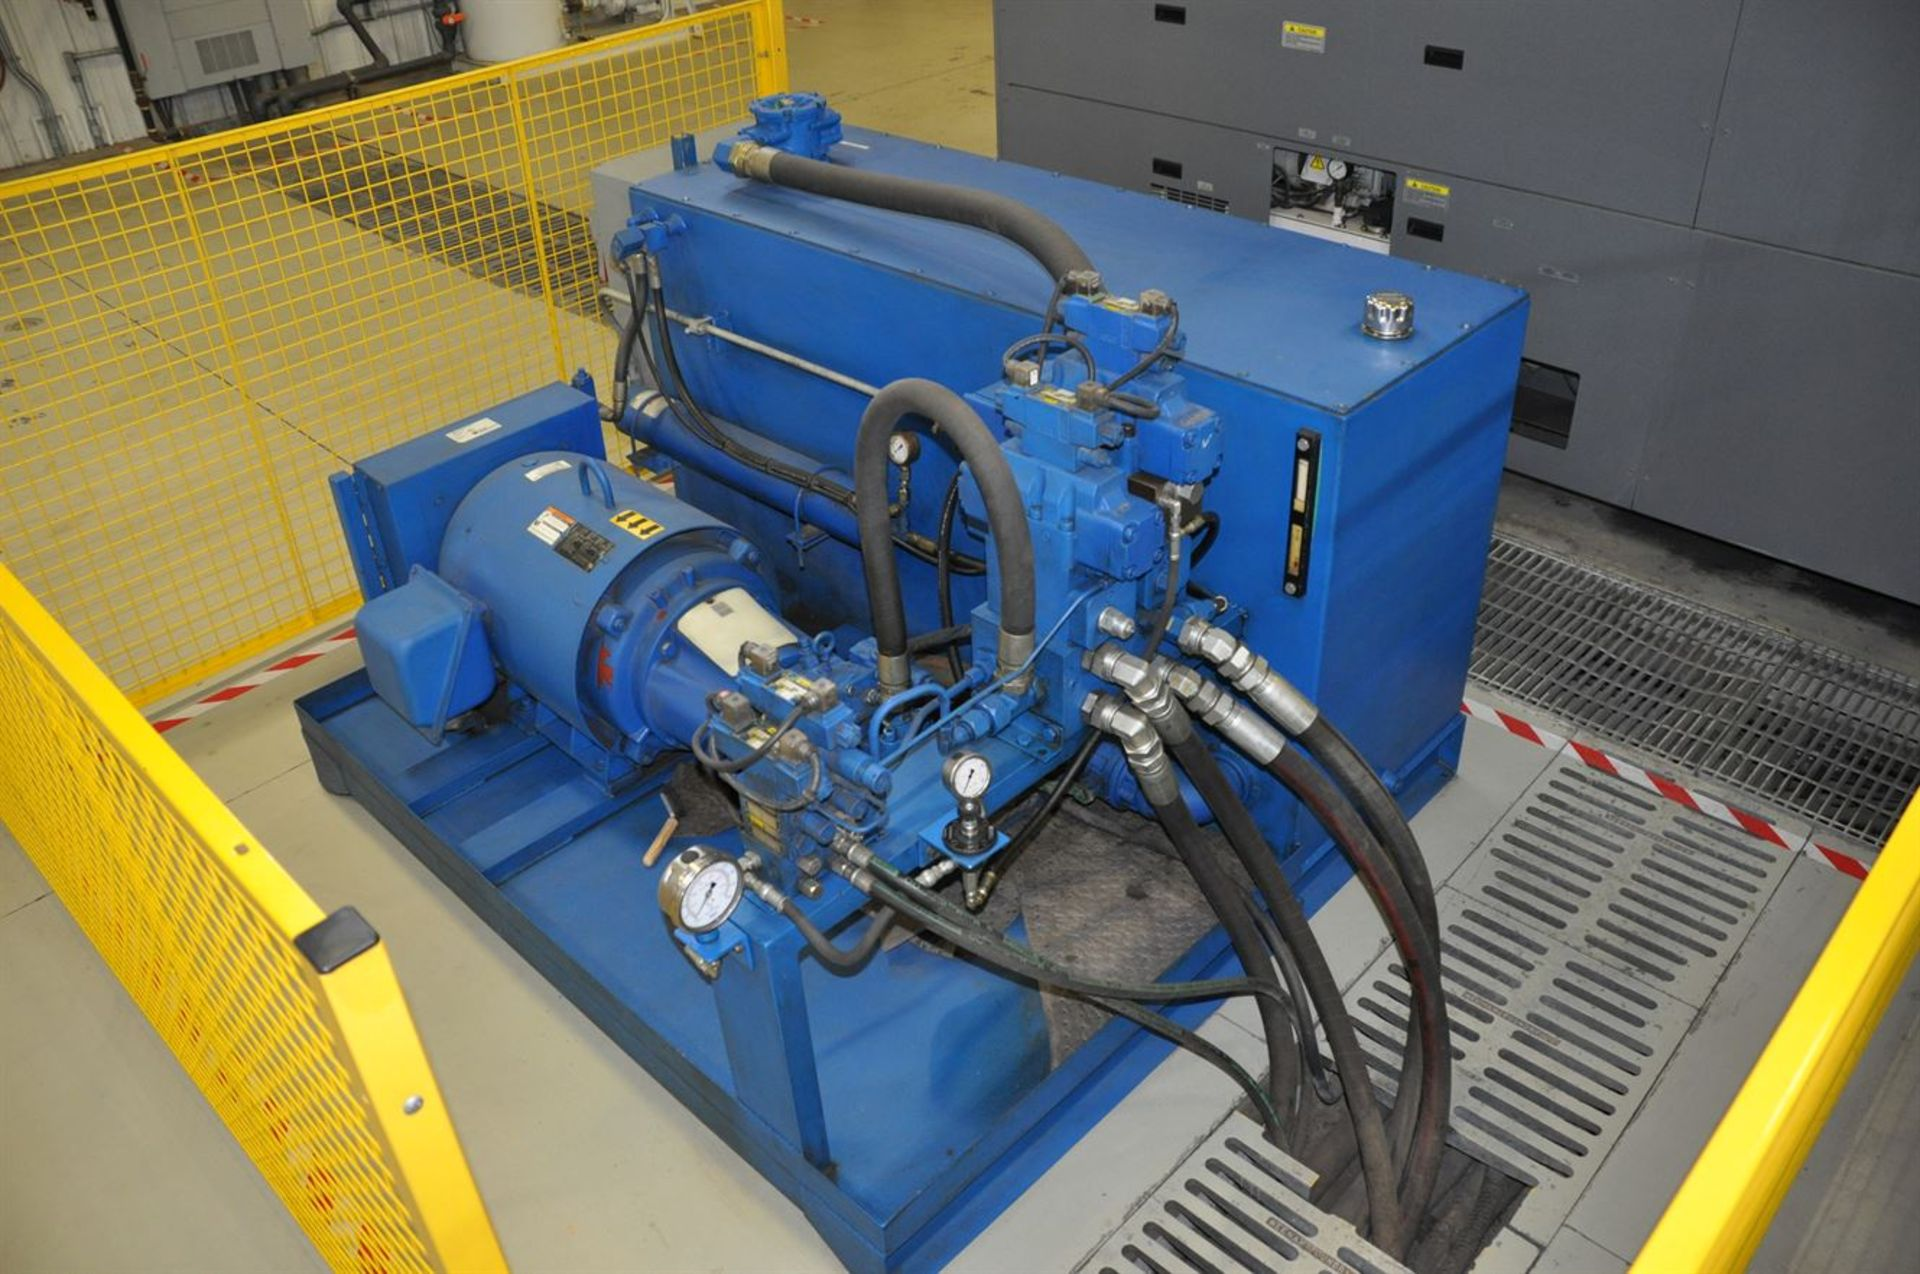 2012 MECHANICAL REPAIR & ENGINEERING INC. 500 Ton Horizontal Hydraulic Swaging Press, s/n 21587, - Image 3 of 5